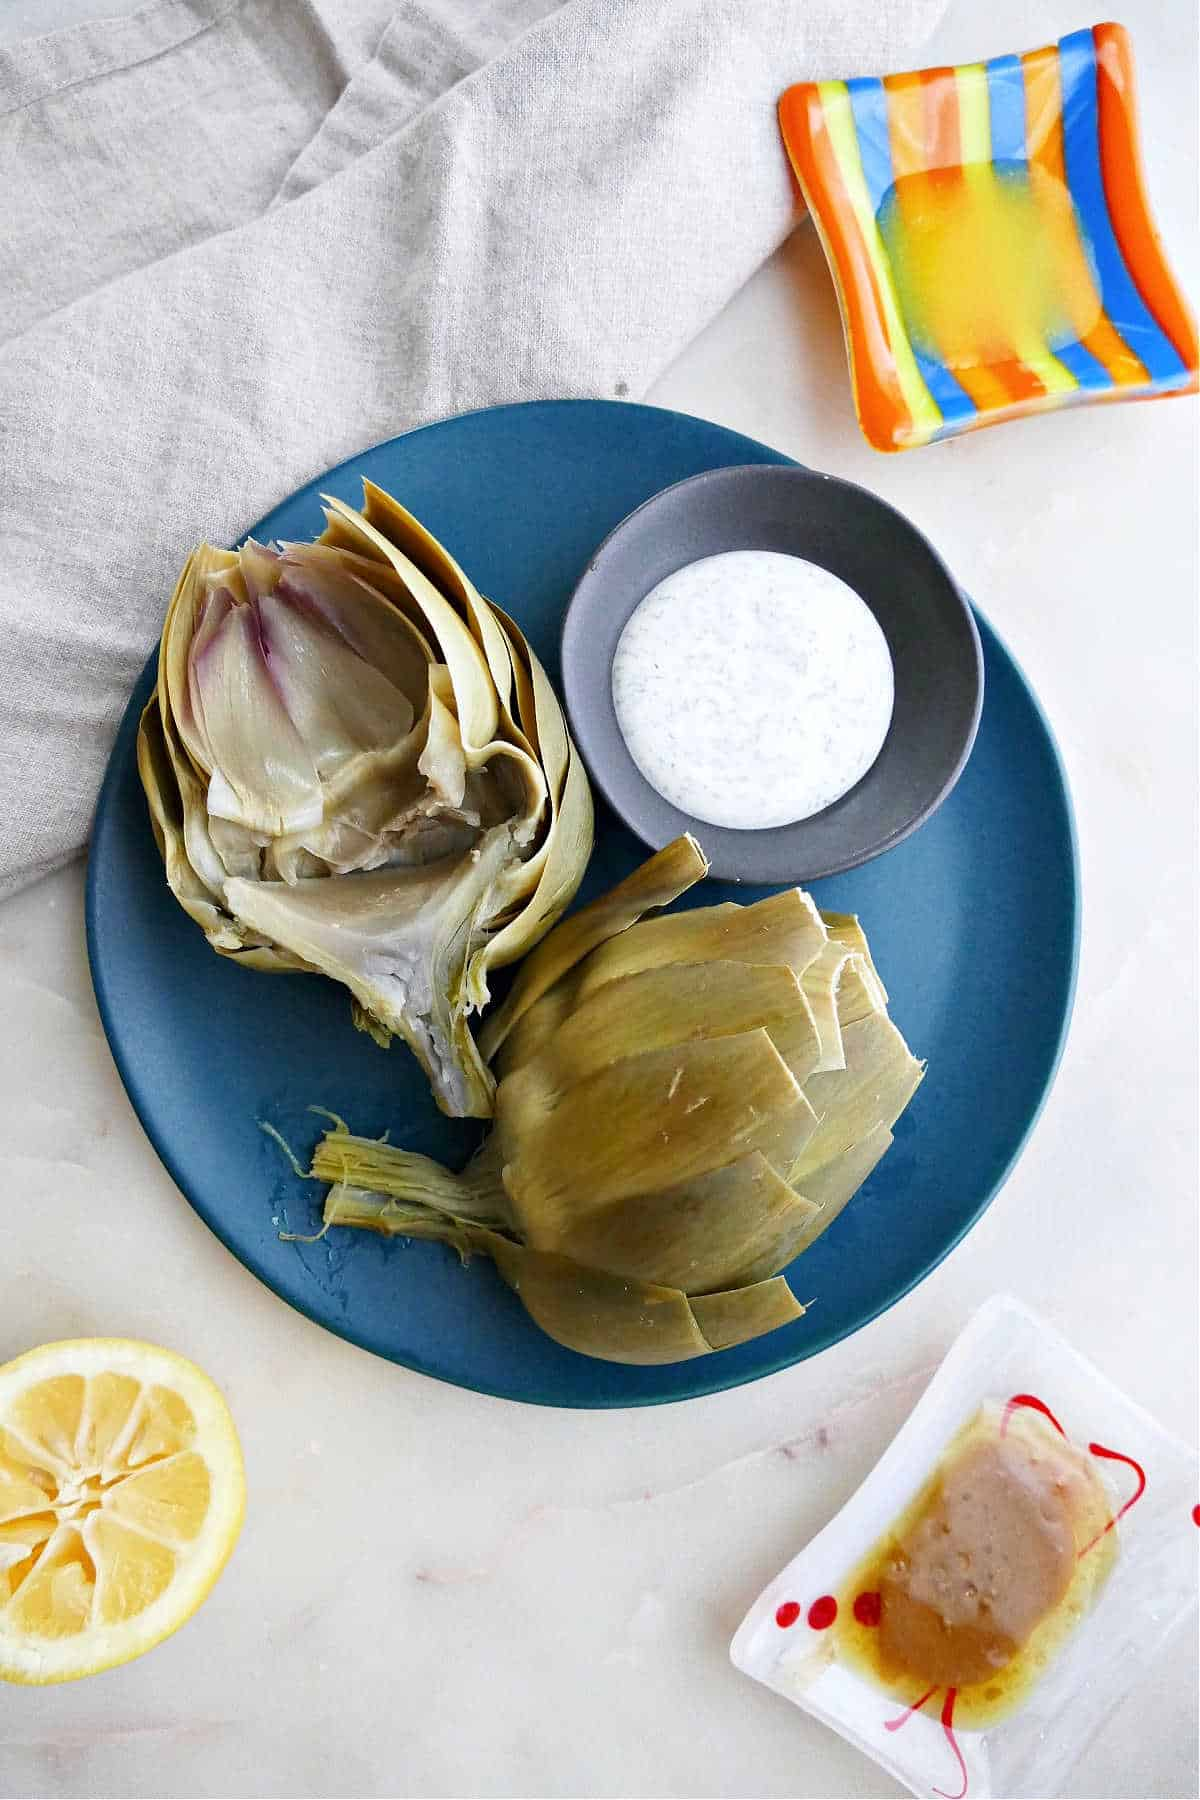 microwave artichoke sliced in half on a serving plate with dipping sauce